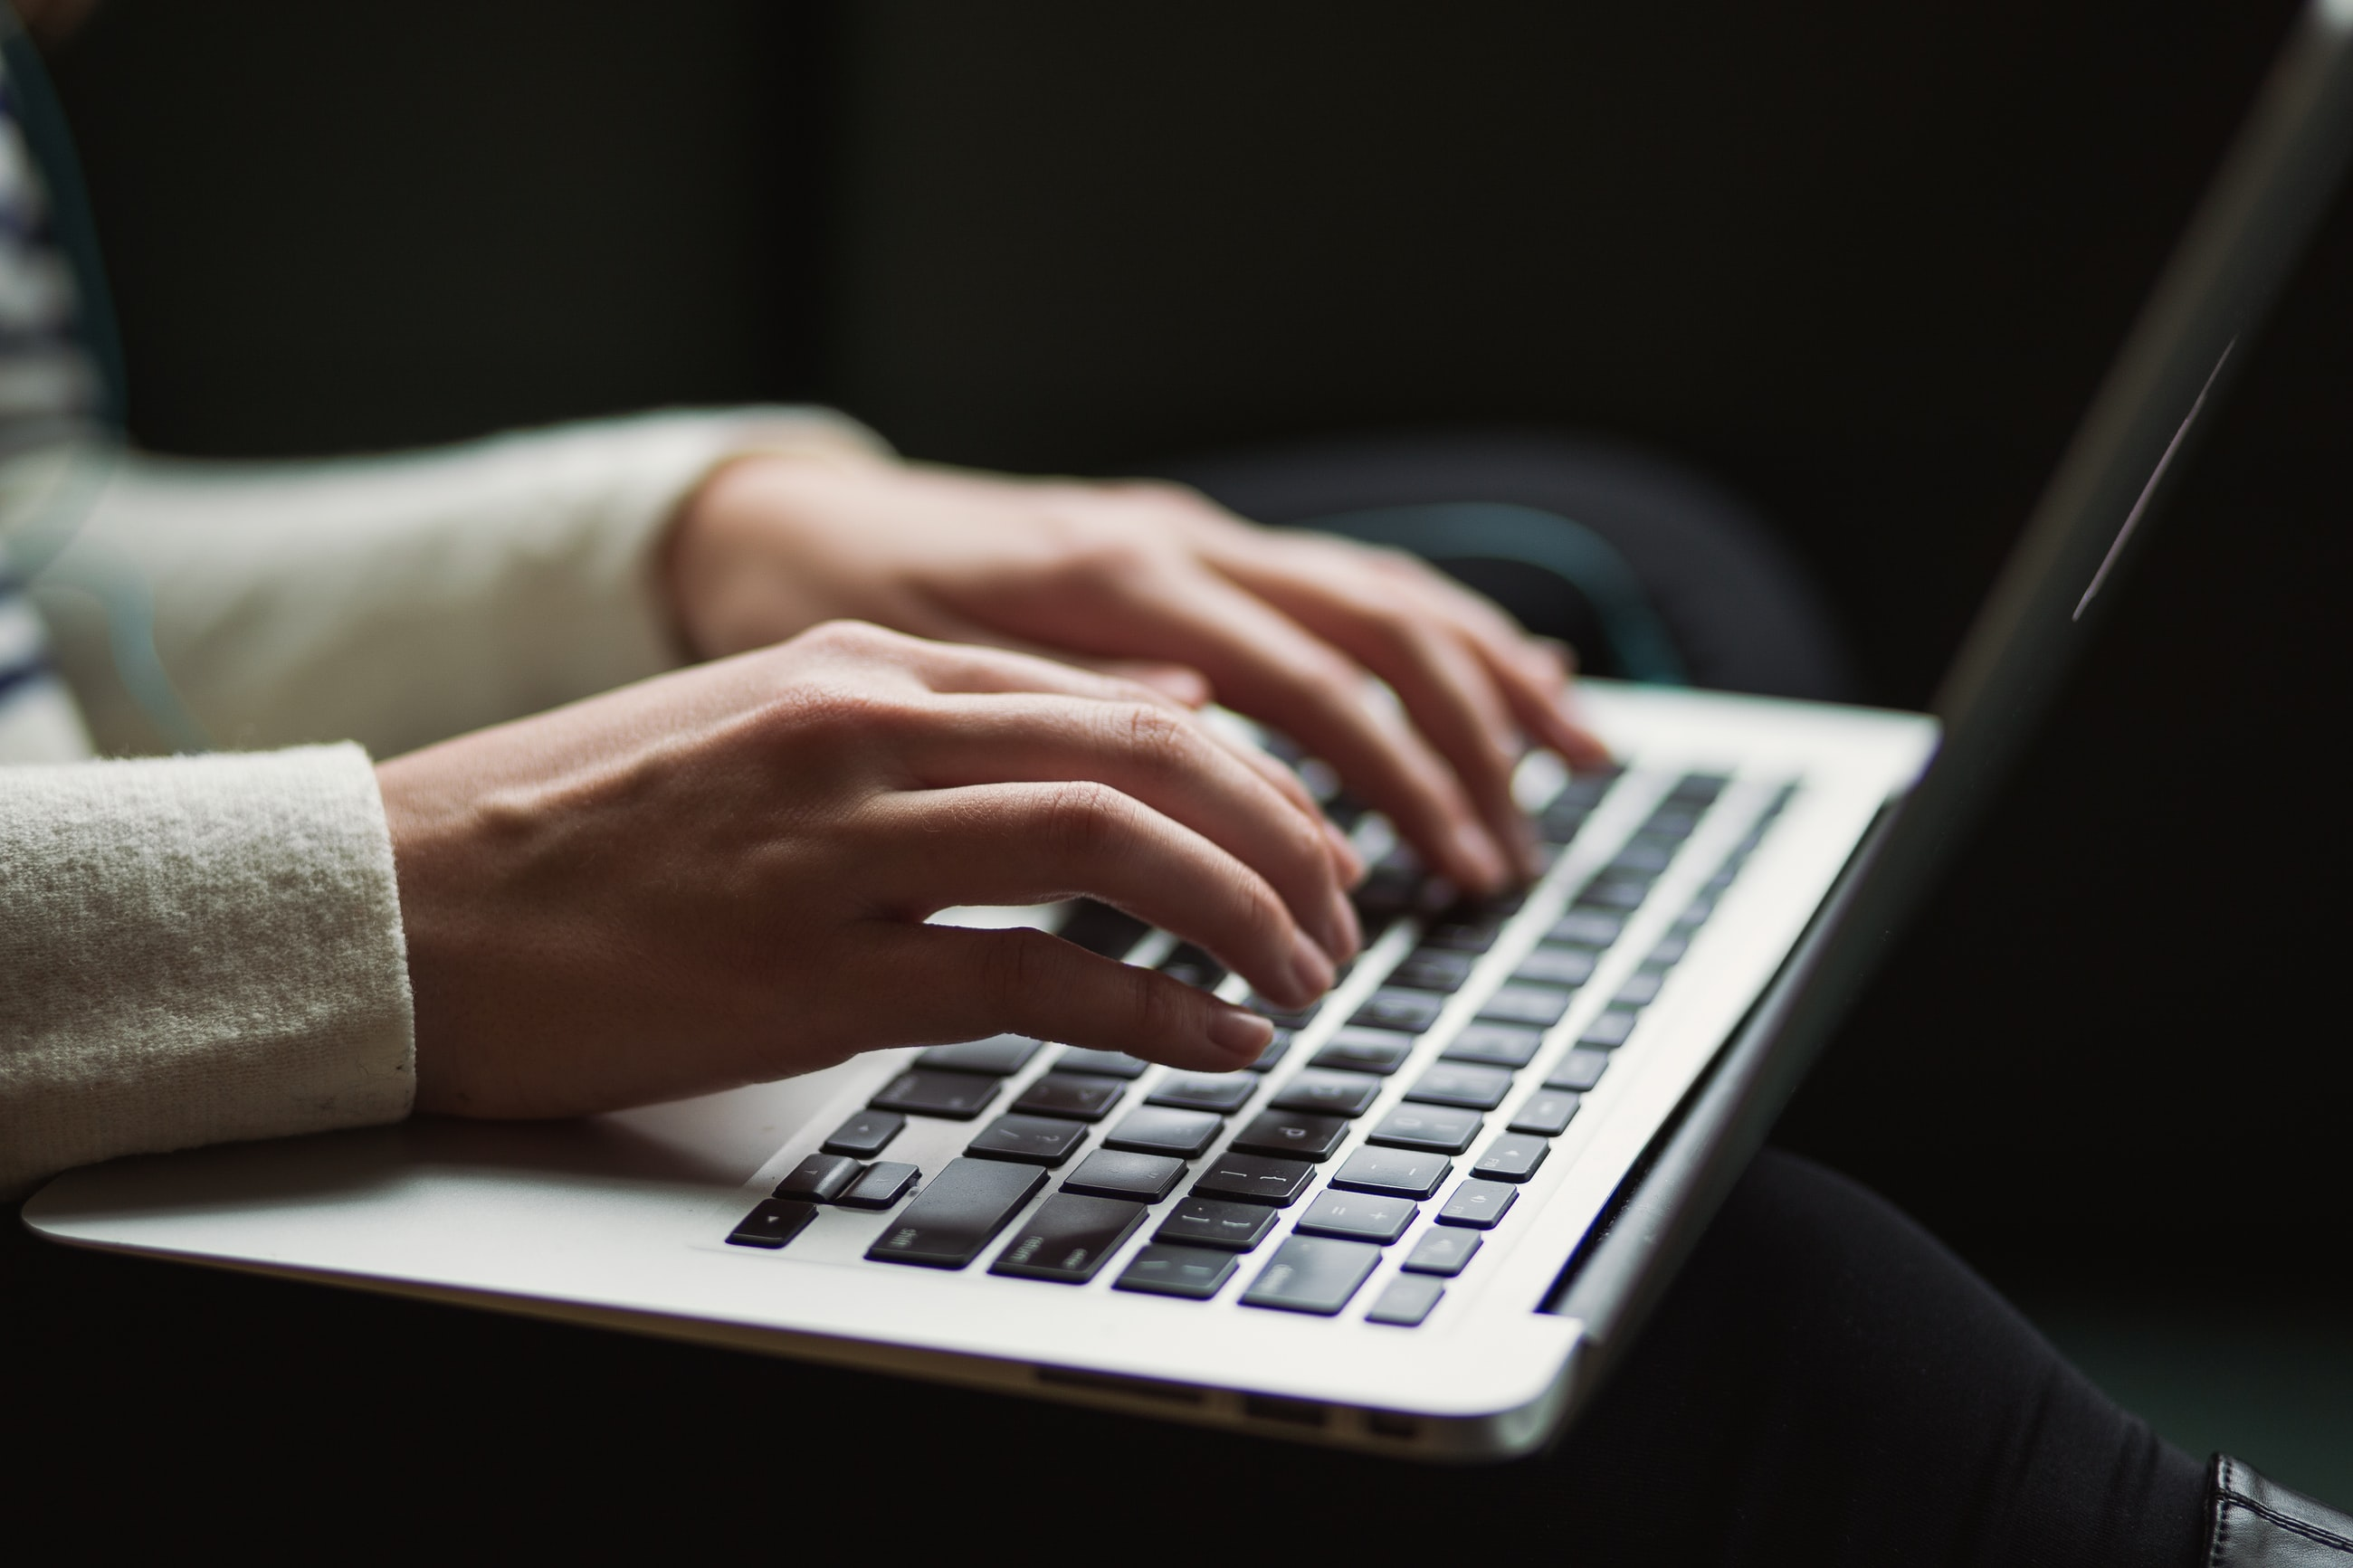 Hands typing on an Apple Laptop